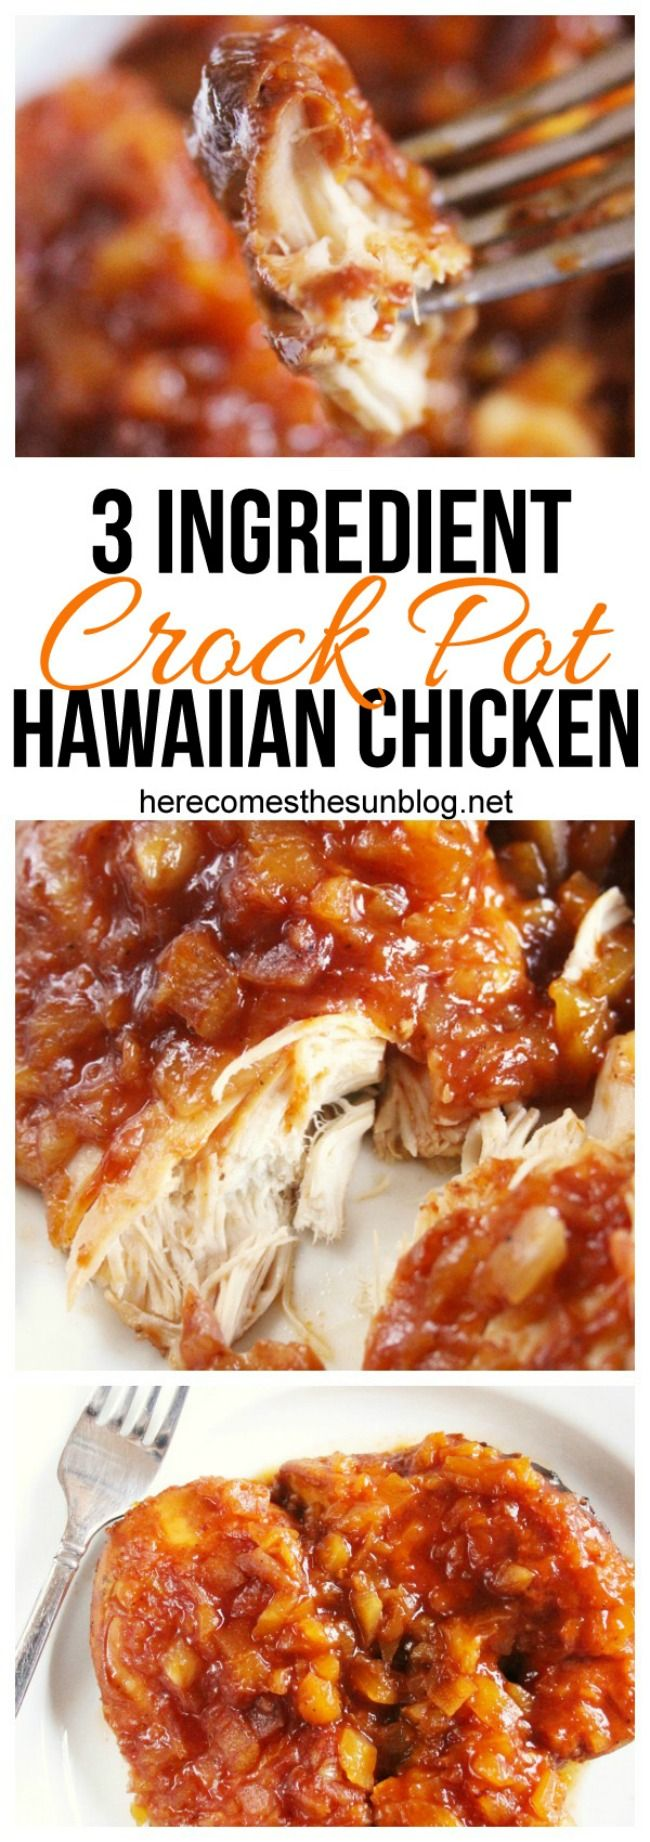 The days of summer are upon us, which means you'll want to spend more time outdoors and less in front of a hot stove. Making a crock pot meal in the morning and then letting it simmer all day leaves you plenty of time to enjoy the great outdoors or the pool.